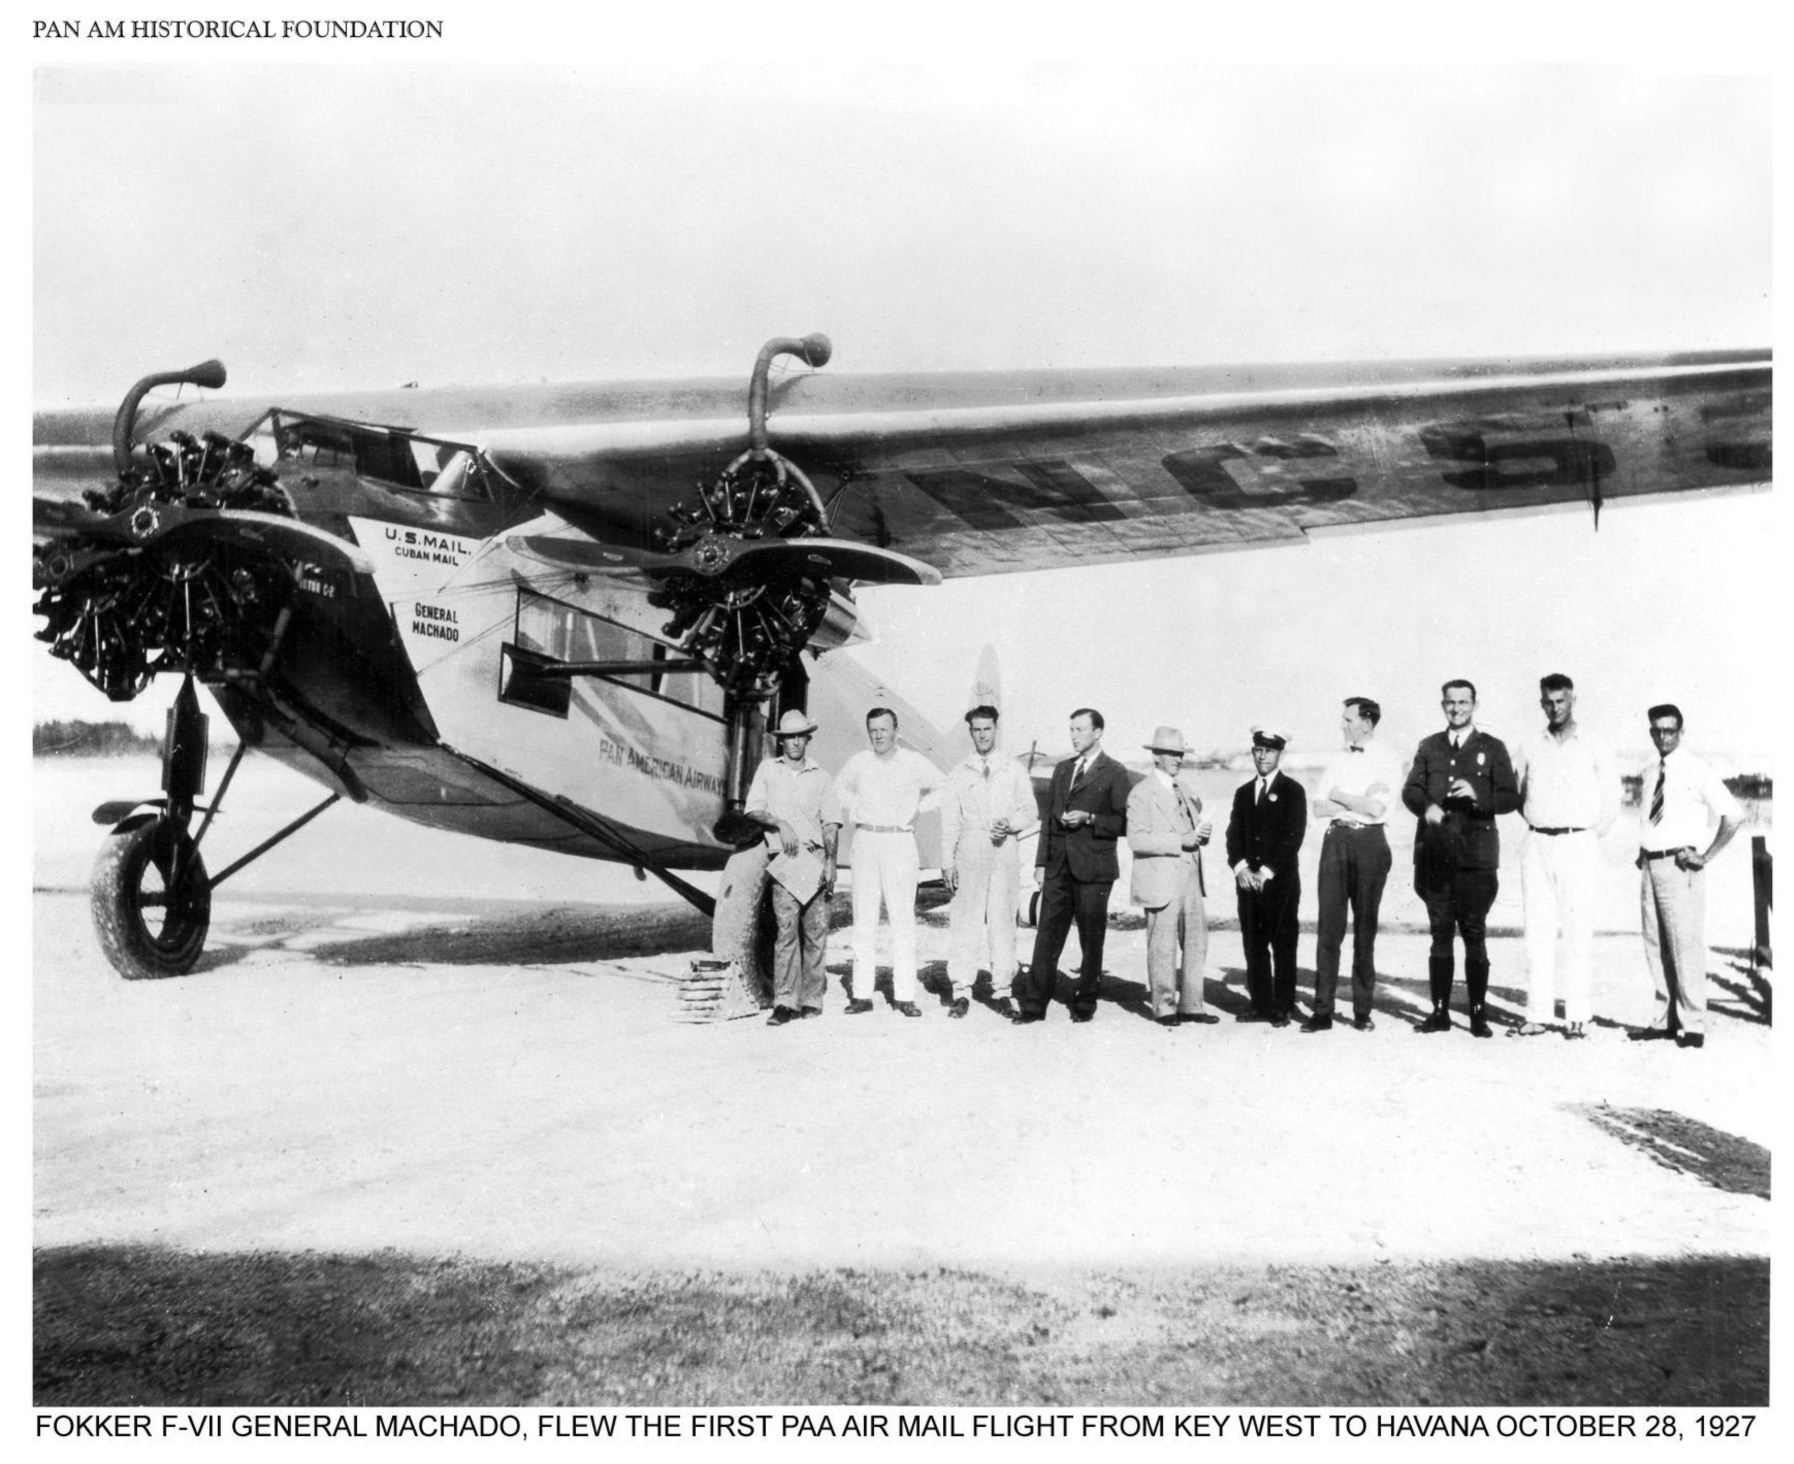 Pan Am's First Flight Vokker F-VII photograph from Pan Am Historical Foundation no copyright infringement intended